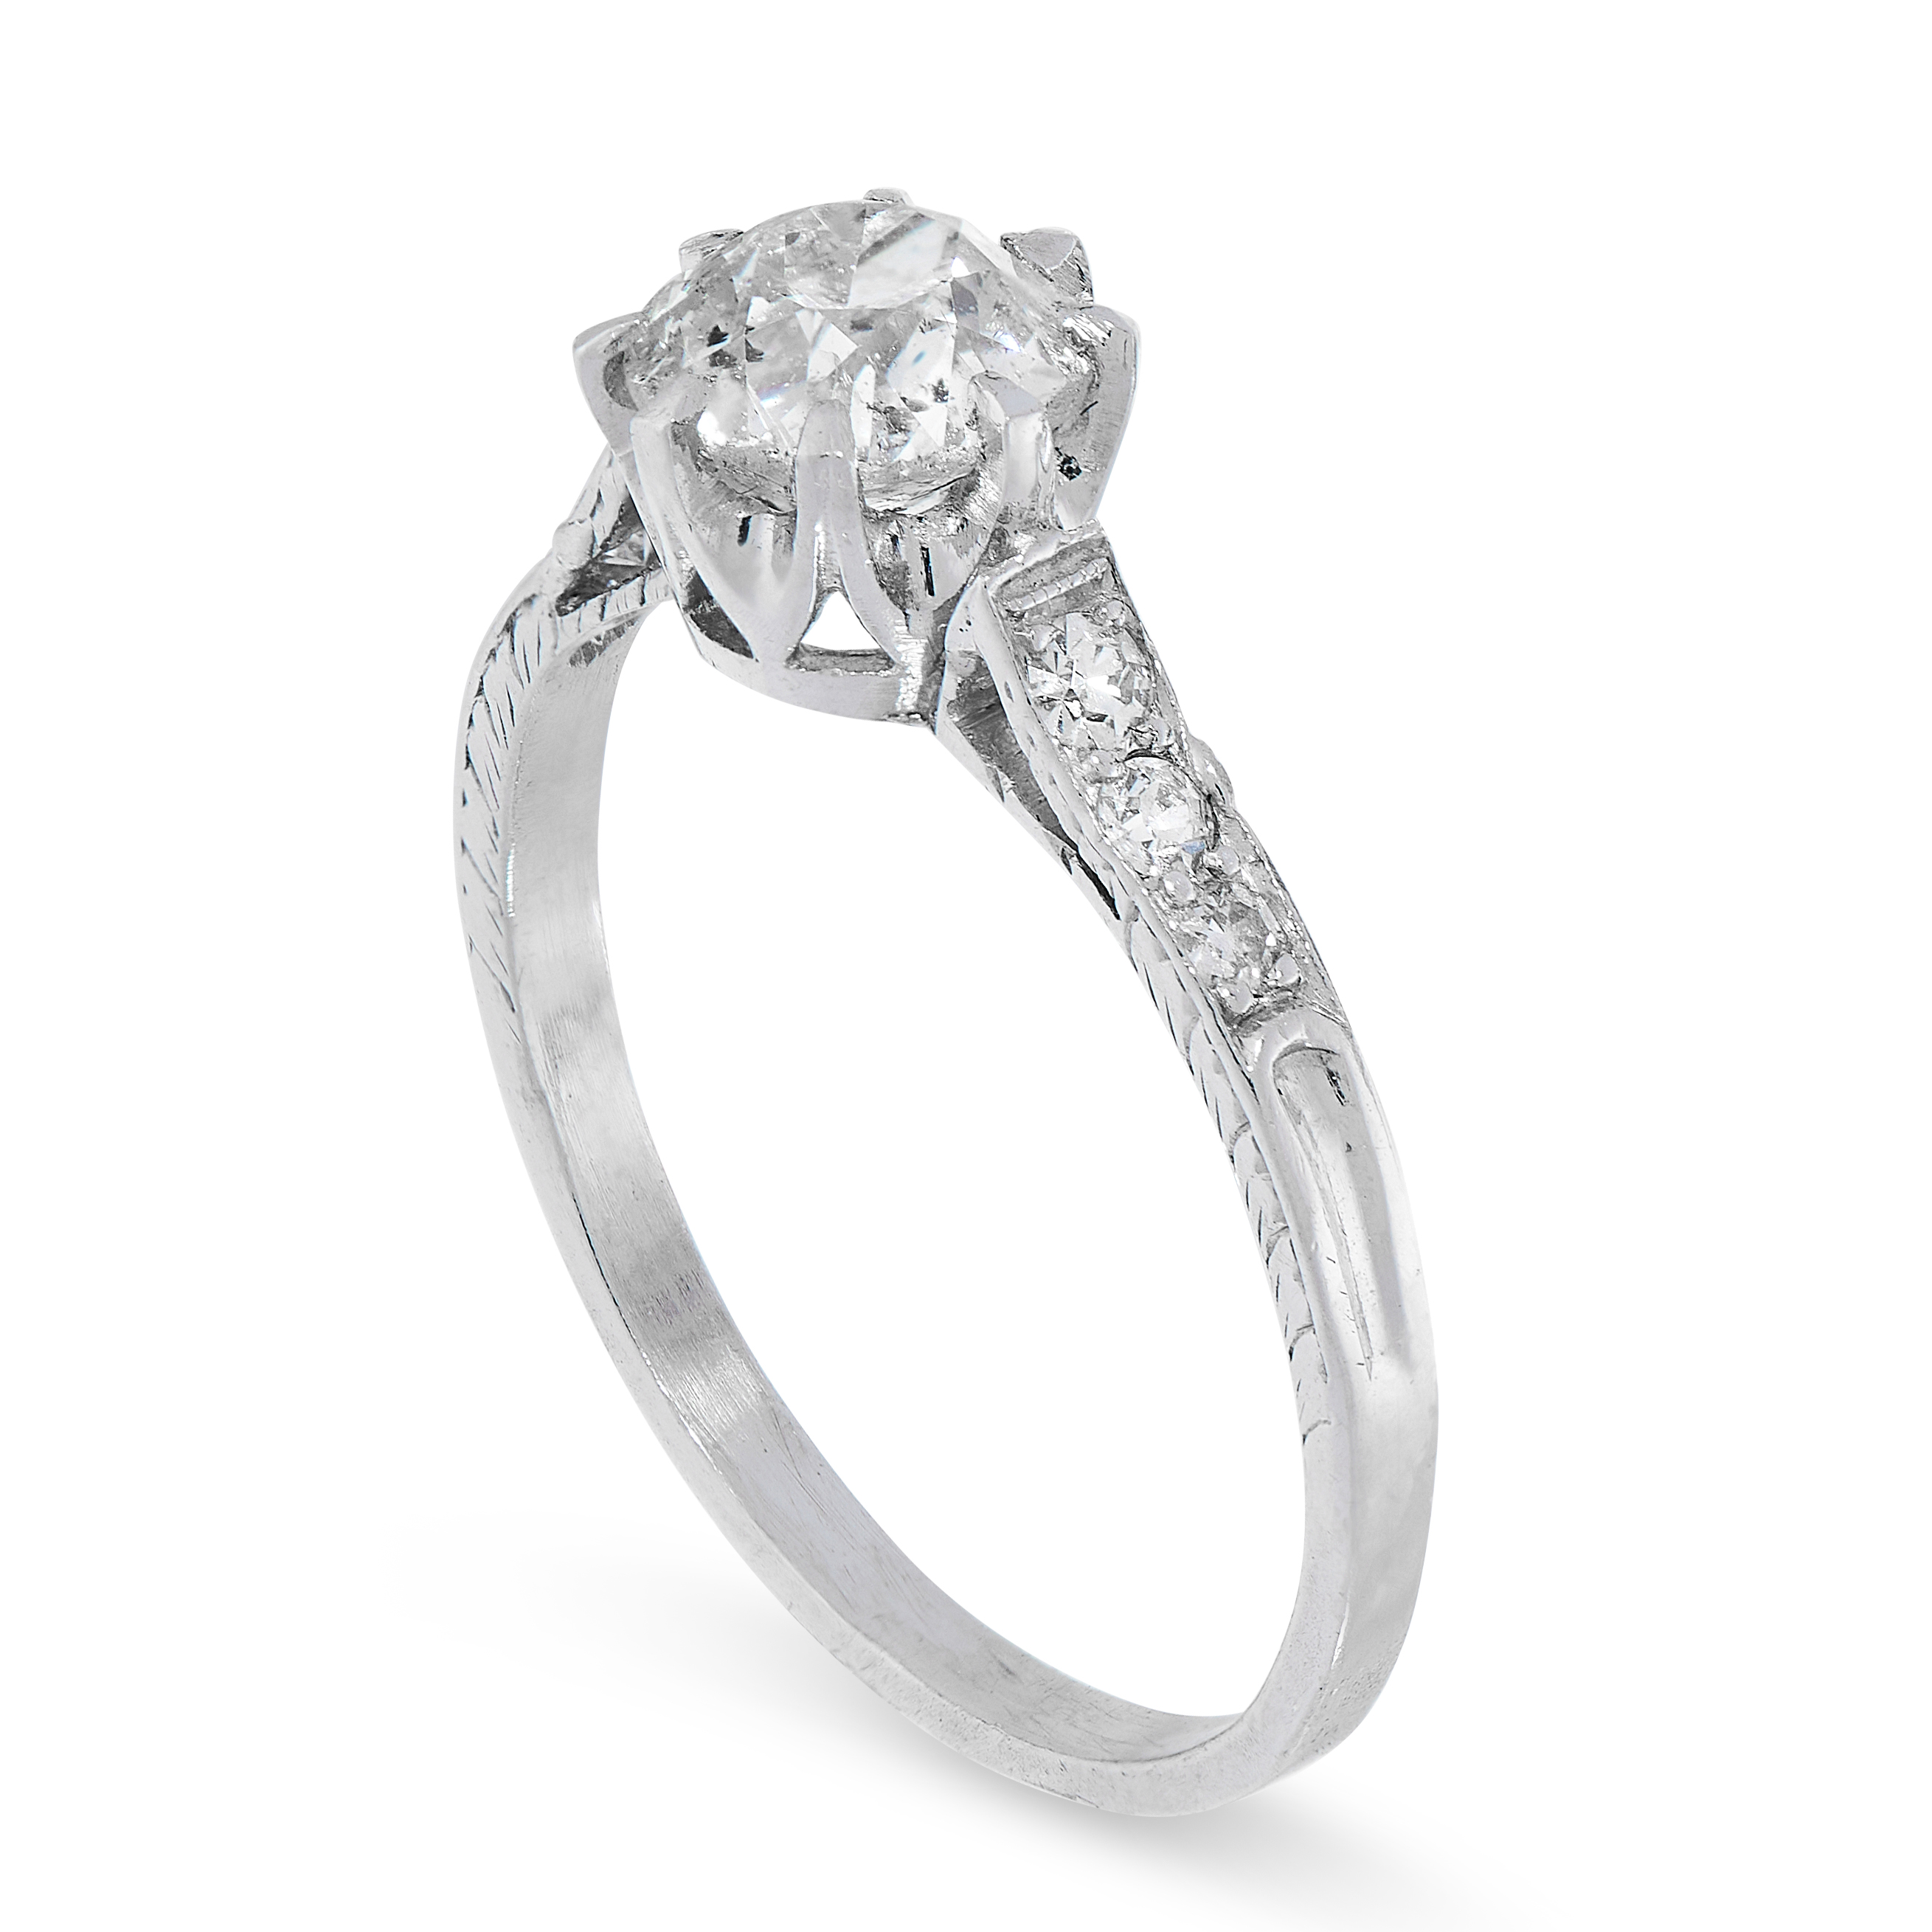 SOLITAIRE DIAMOND RING comprising of an old cut diamond of 1.00 carats, with further single cut - Image 2 of 2